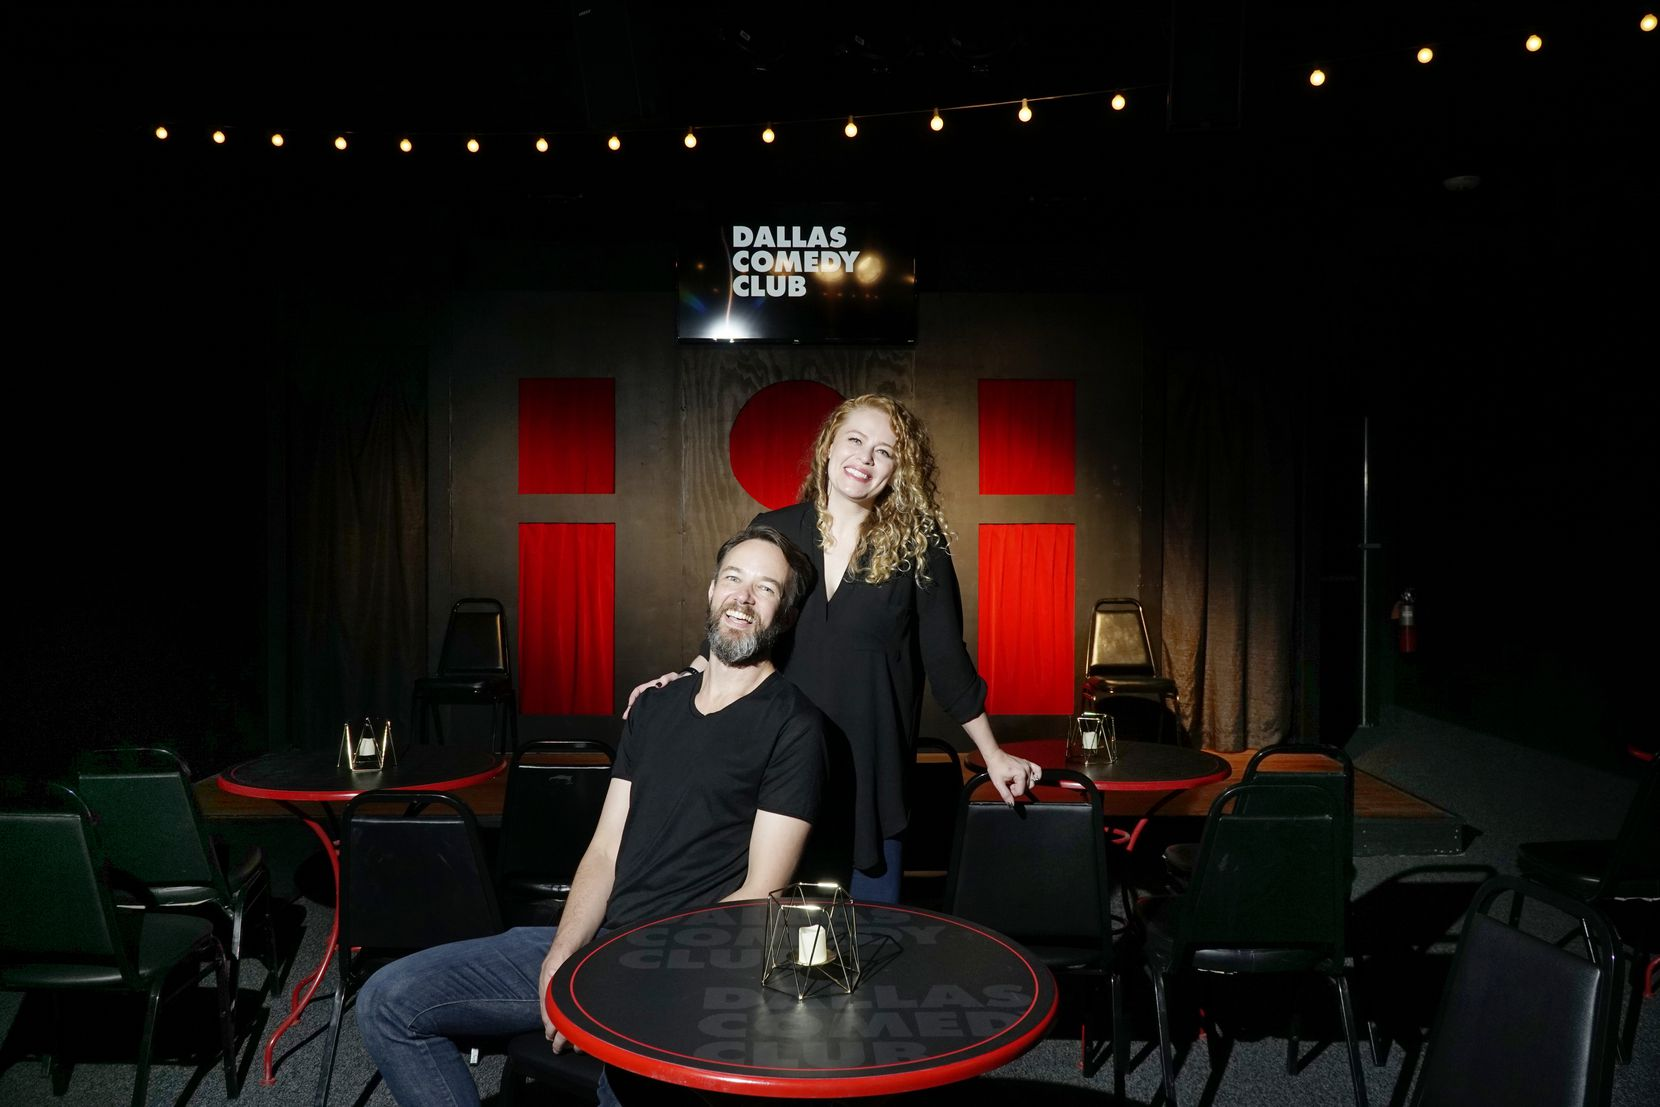 The new club's owners, Rosie and Ian Caruth, started performing at the former Dallas Comedy House in 2018, after moving from New York.